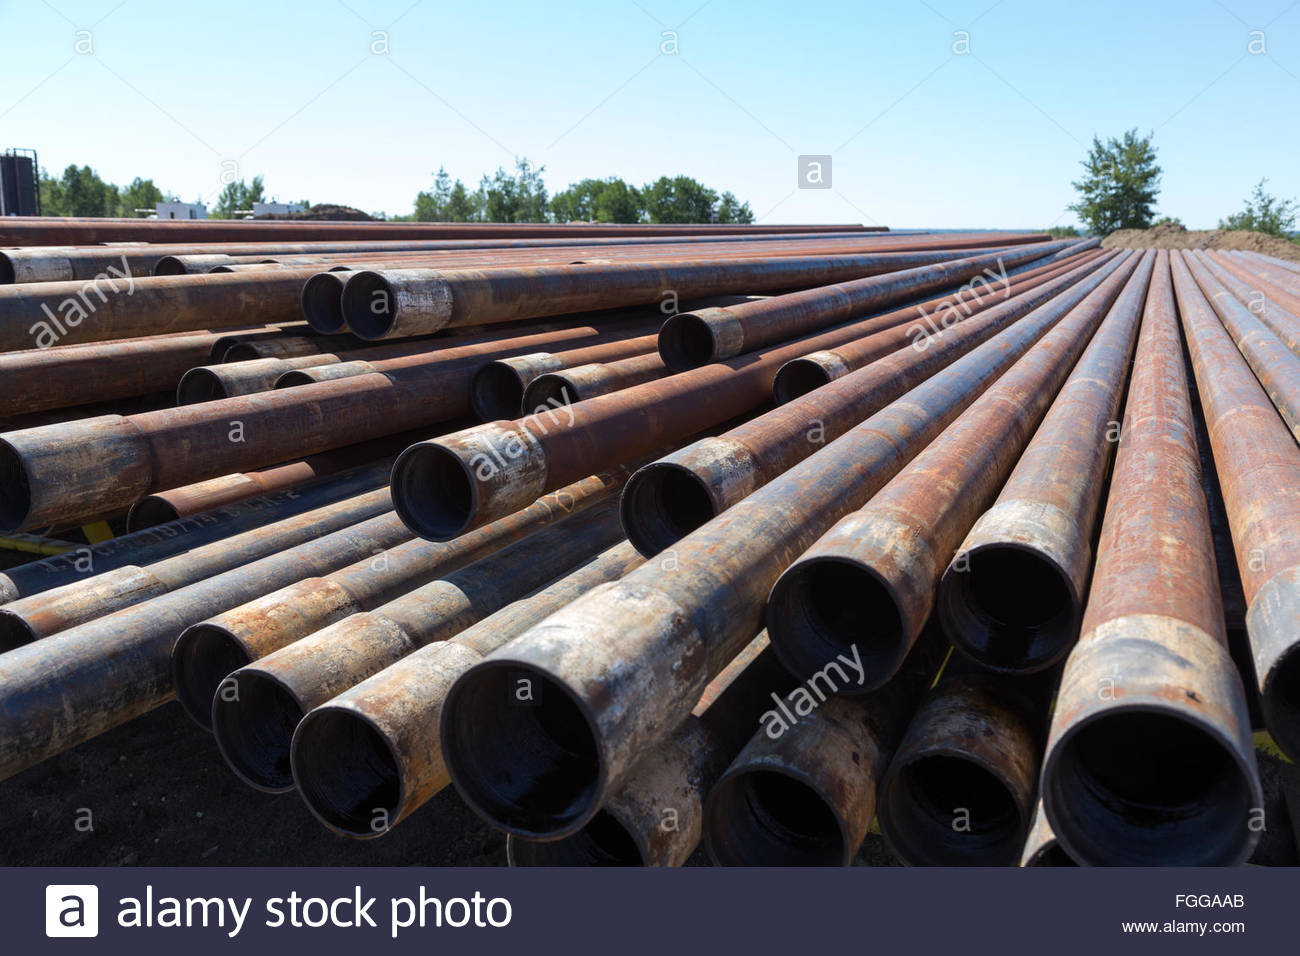 Metal oil well casing pipes stock photo alamy